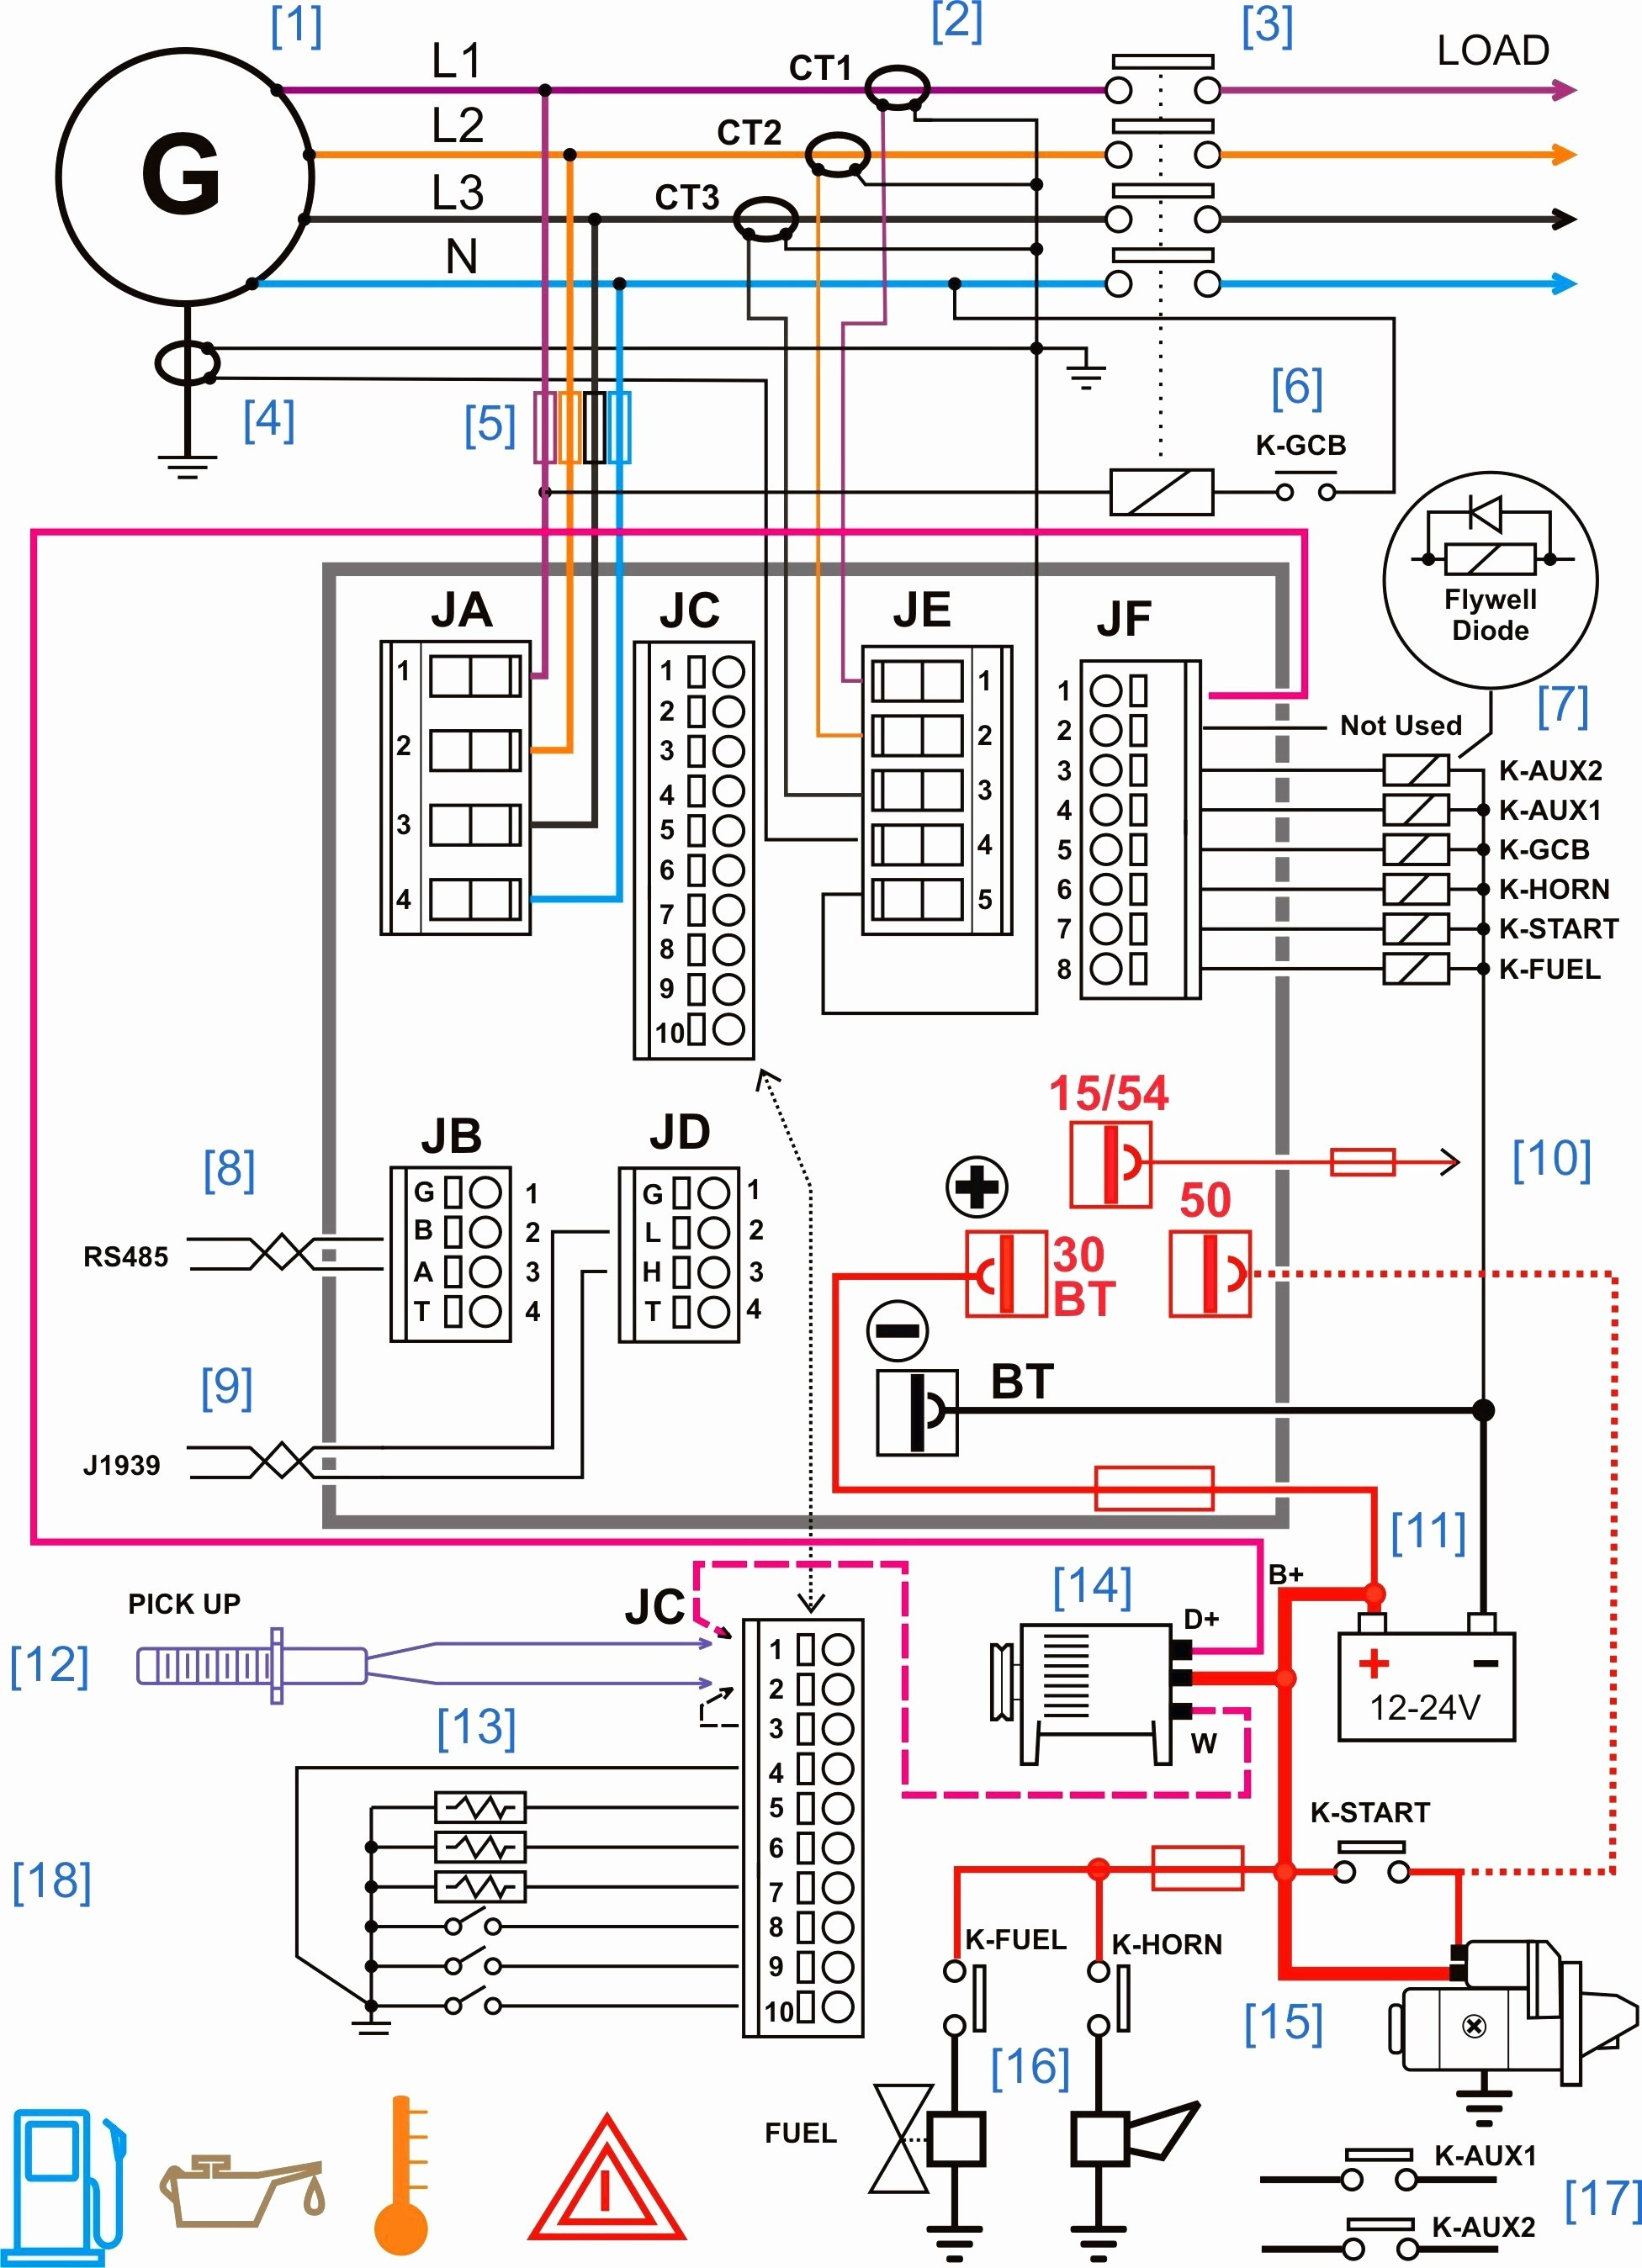 Car Electrical Wiring Diagram Gallery